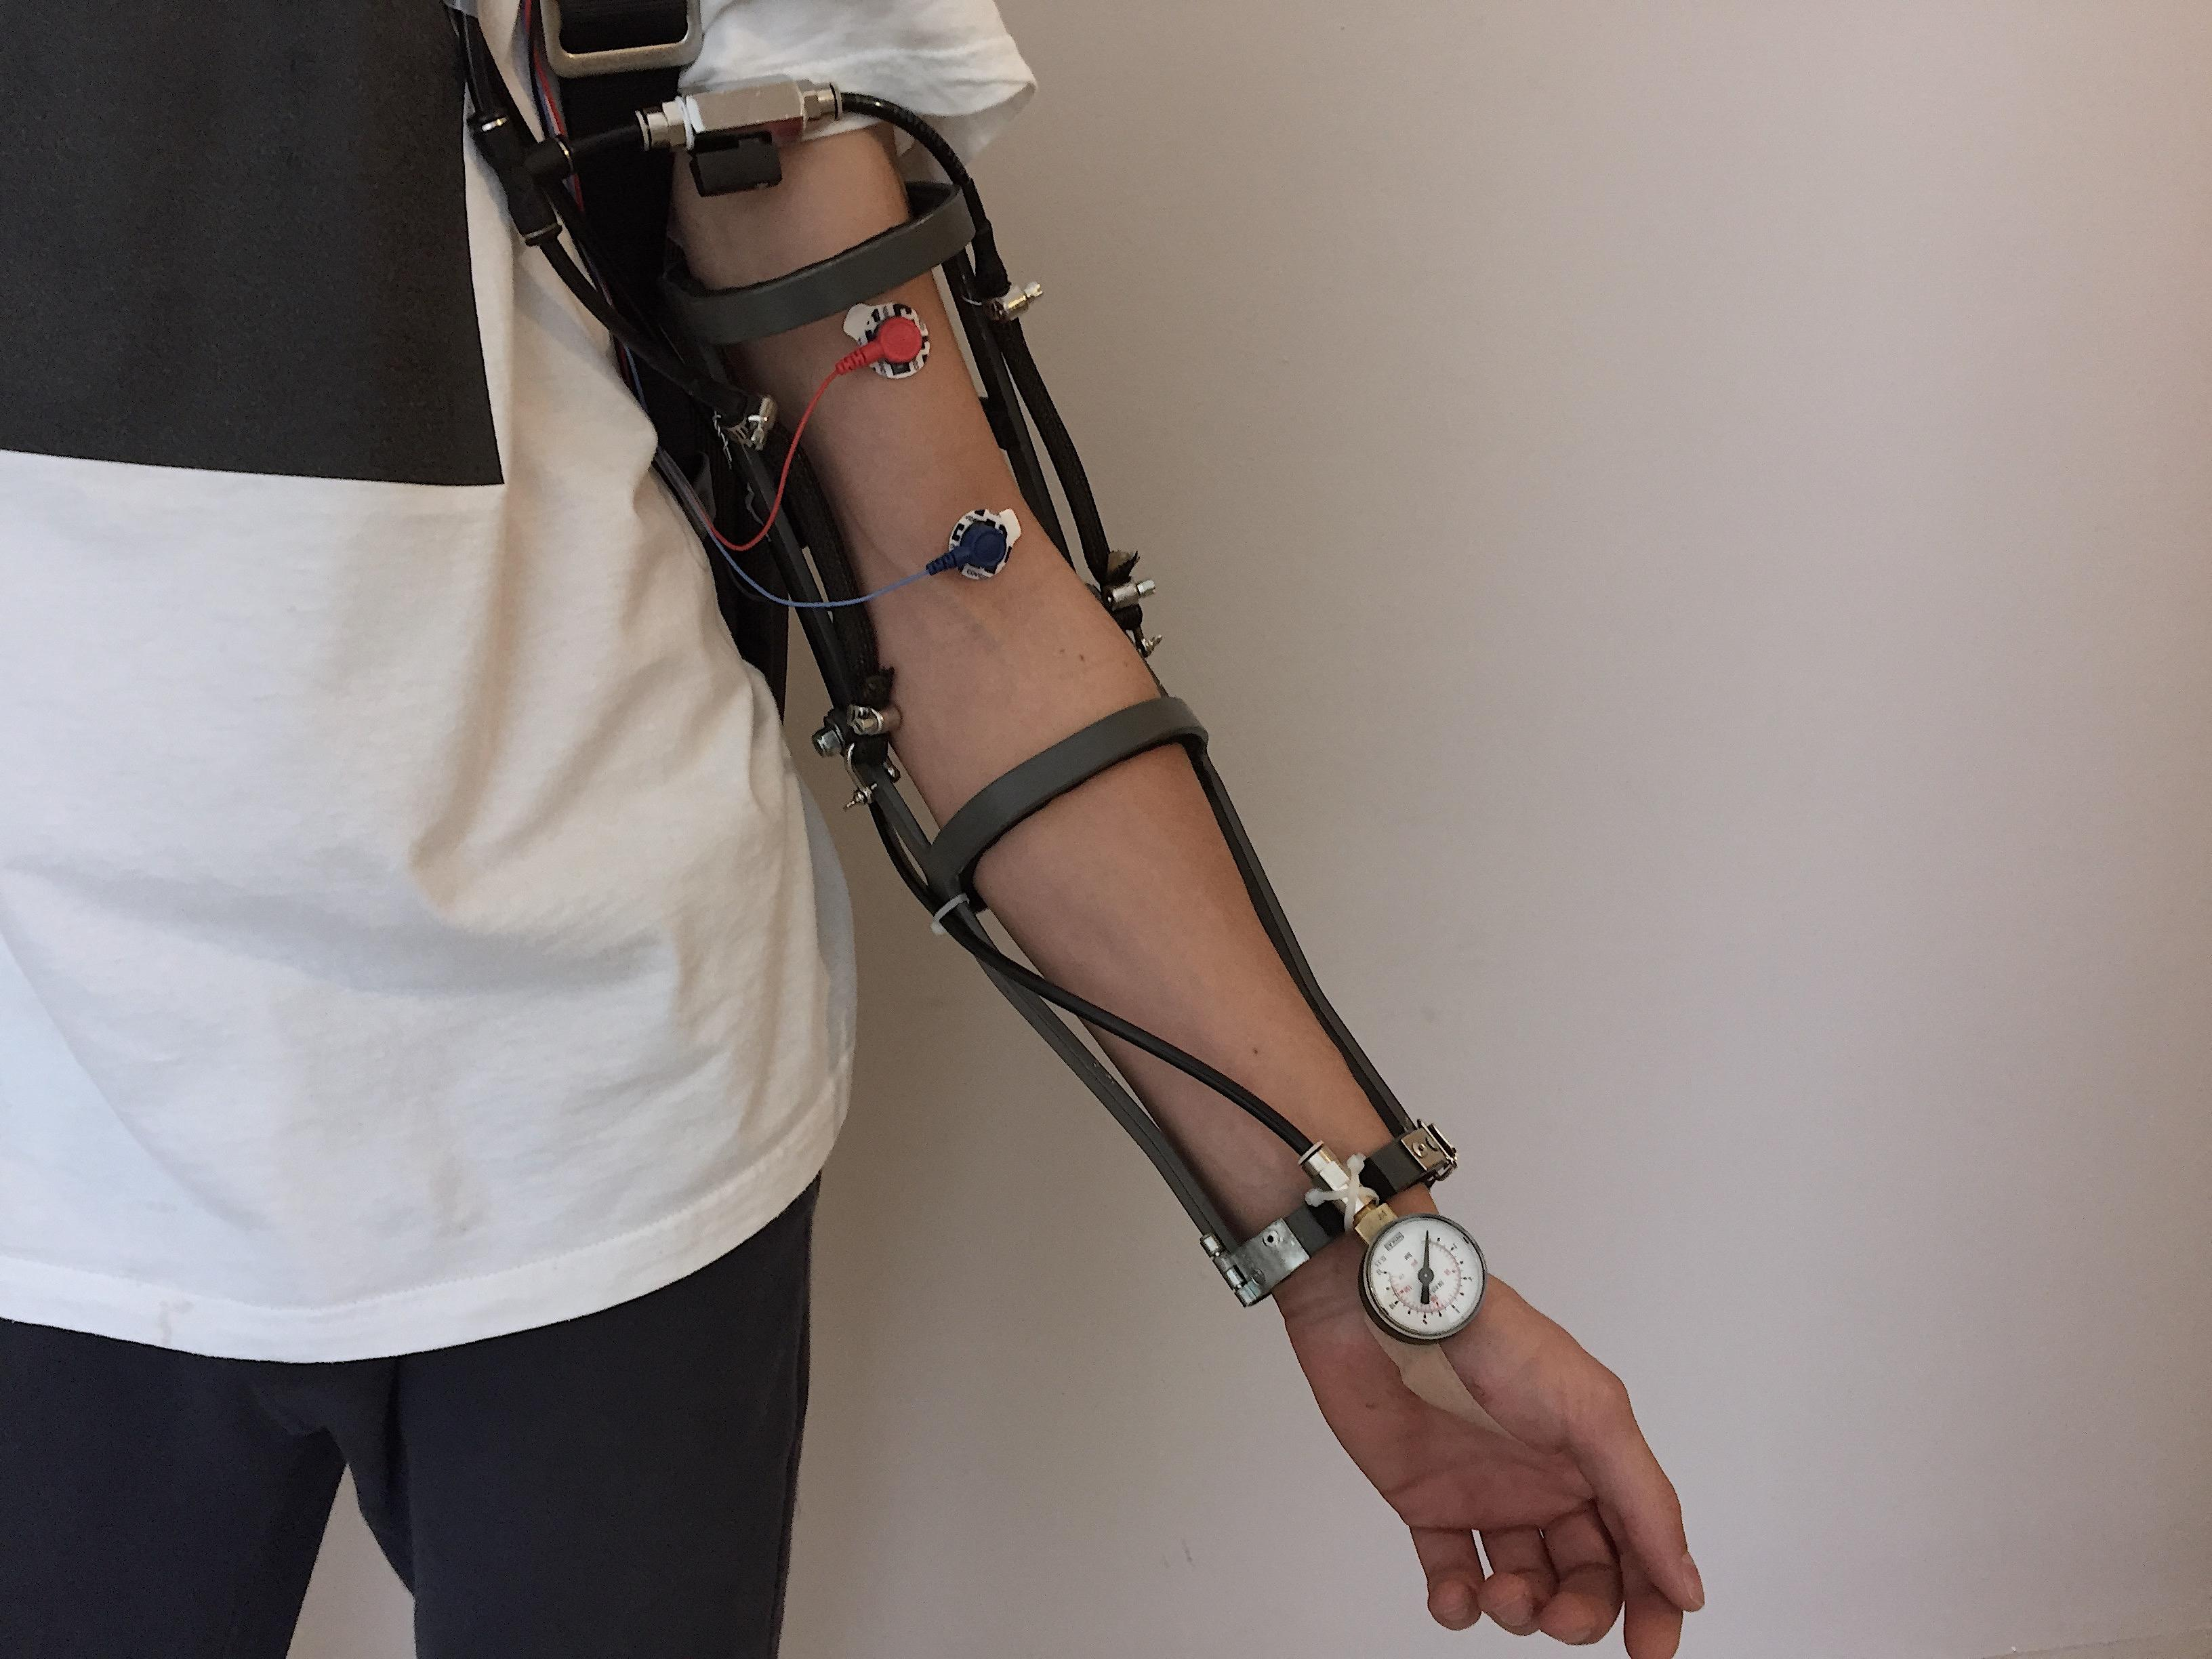 Orion: EMG driven Exoskeleton